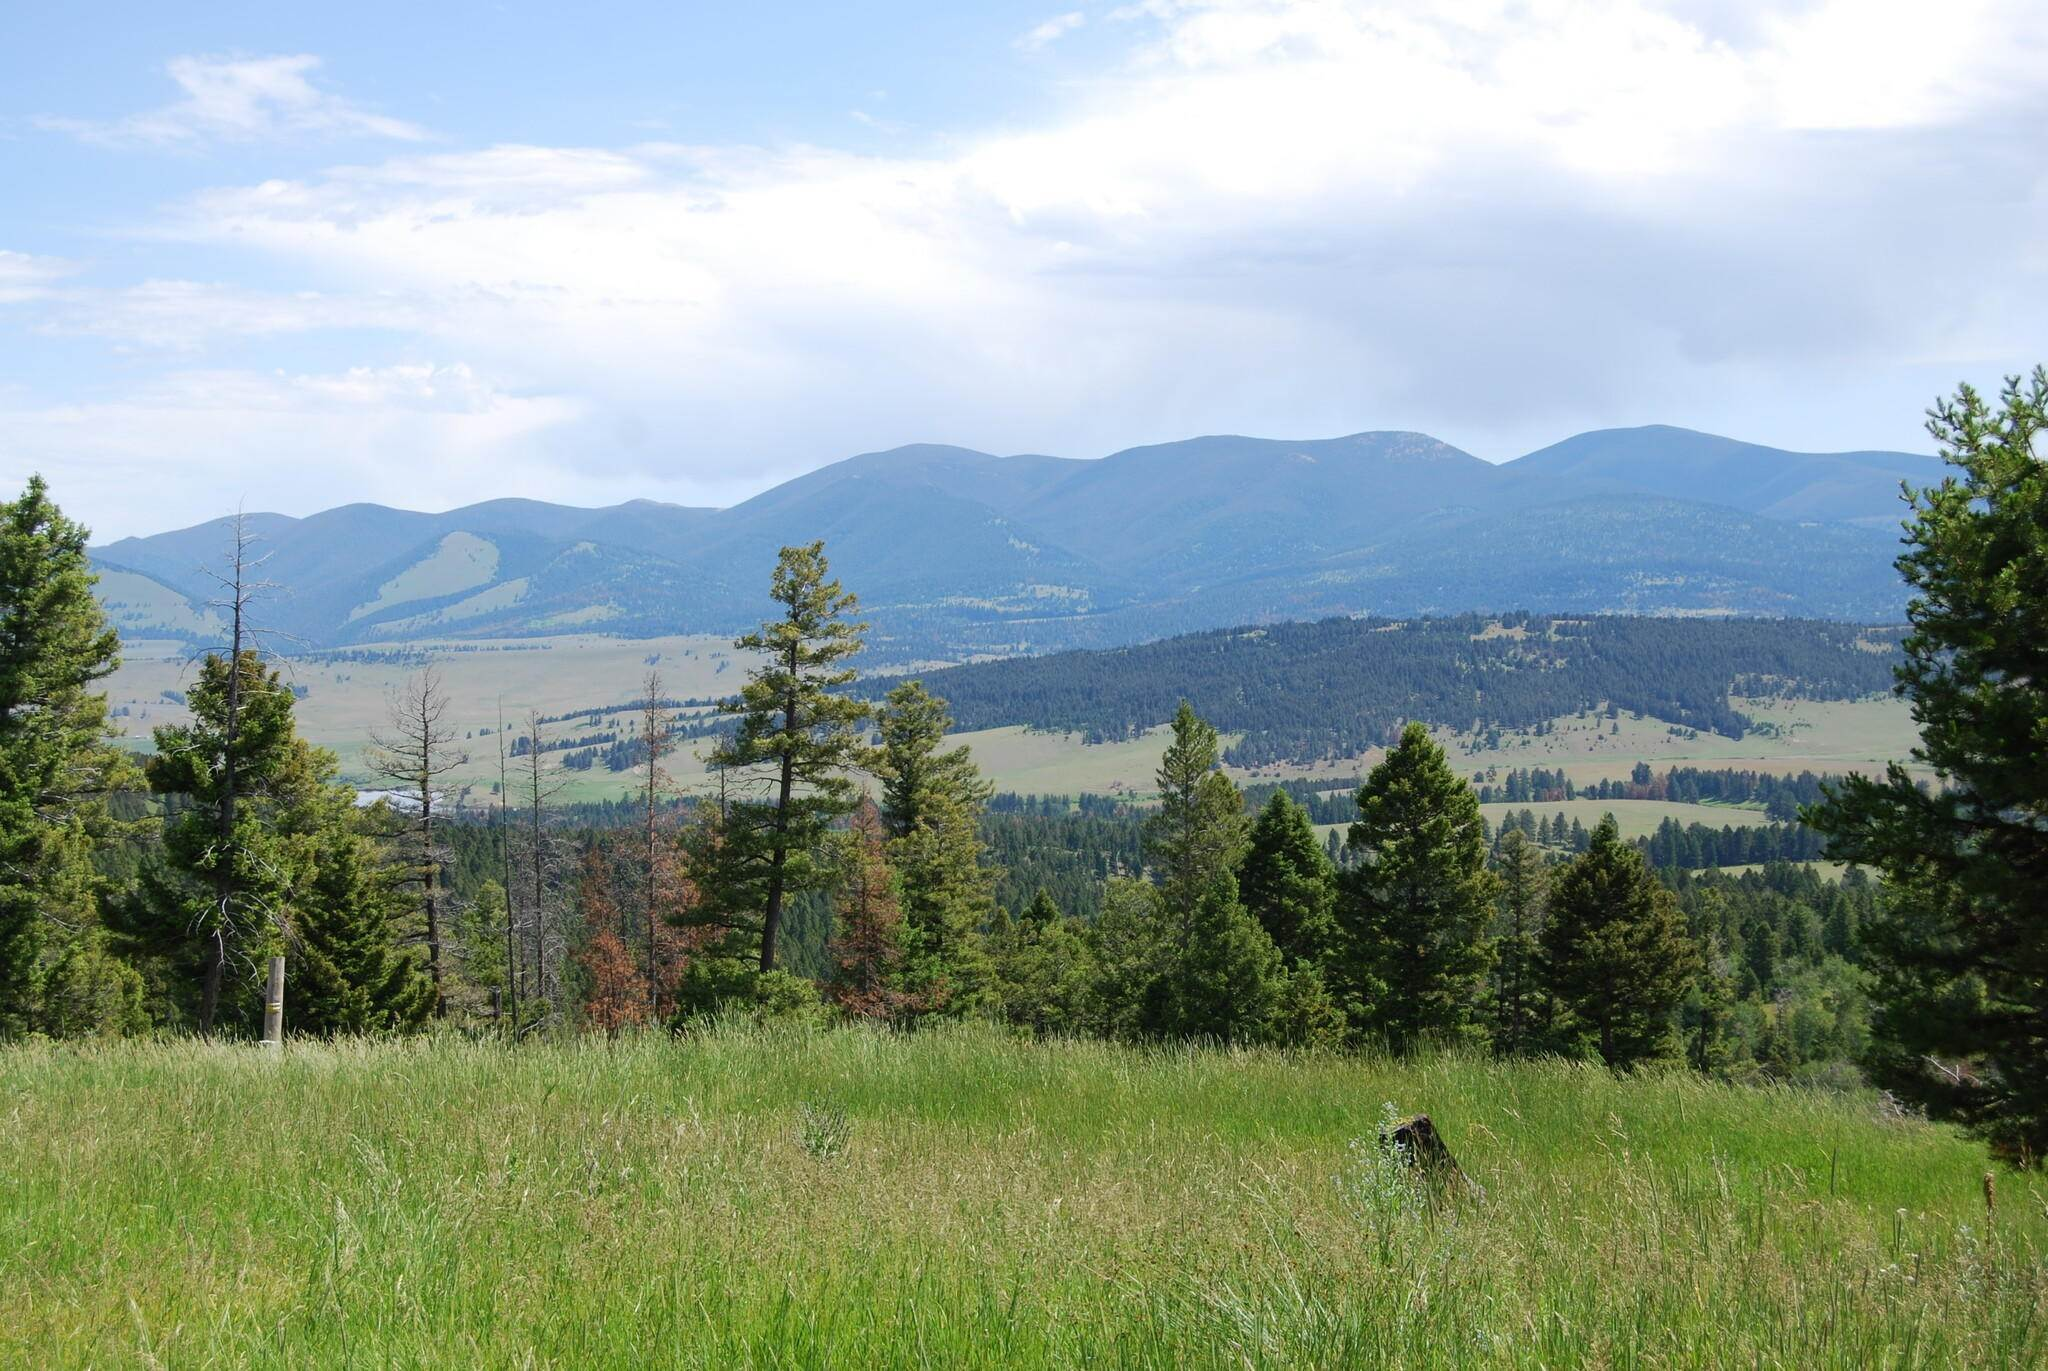 Farm / Agriculture for Sale at Nhn Mt-141 Avon, Montana 59713 United States